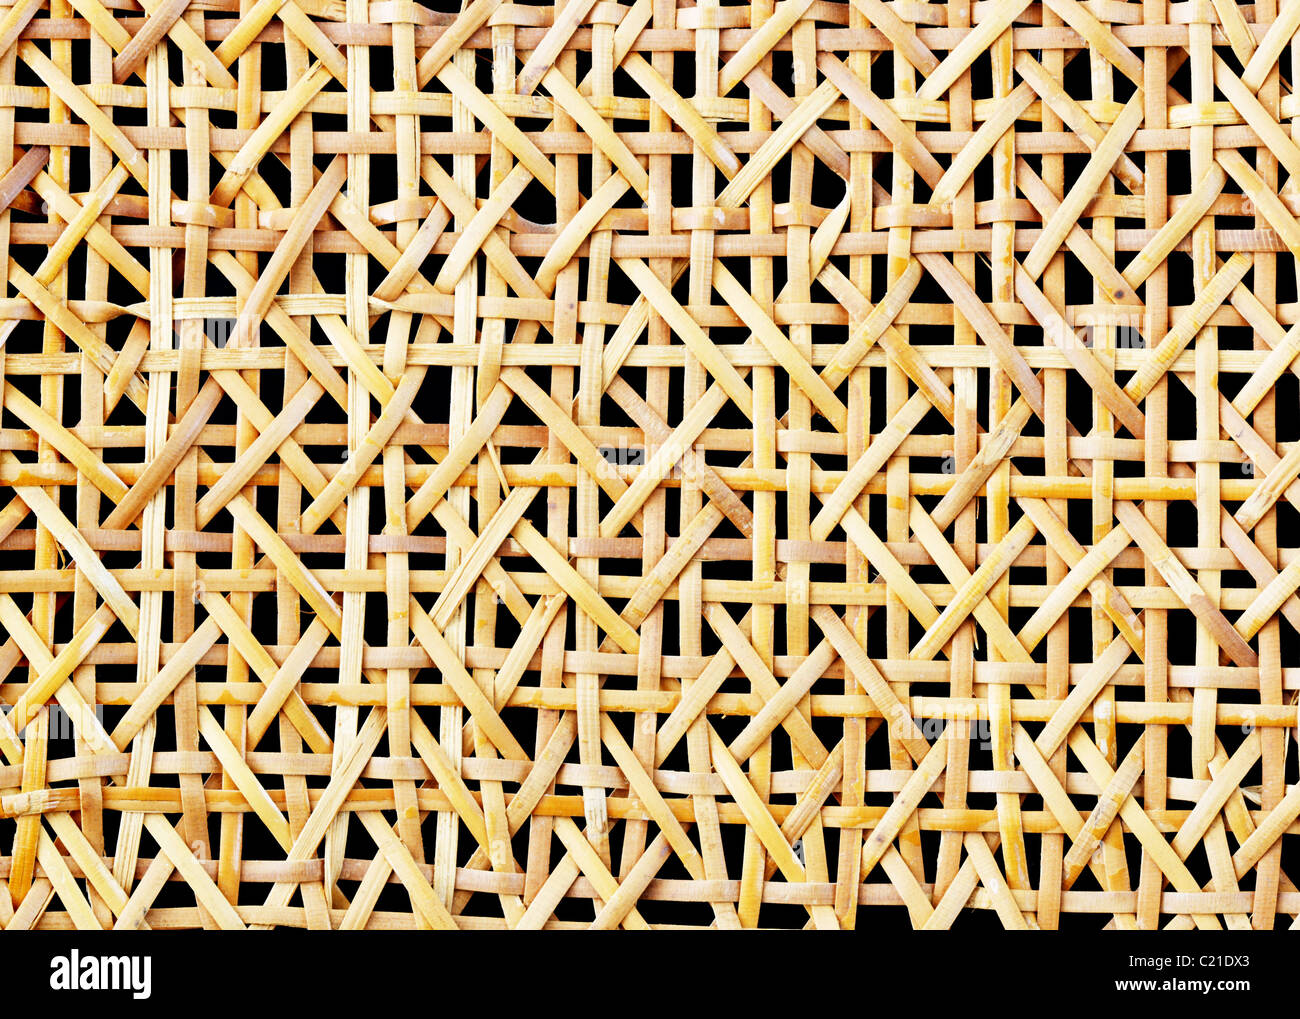 woven wicker mesh with black background - Stock Image